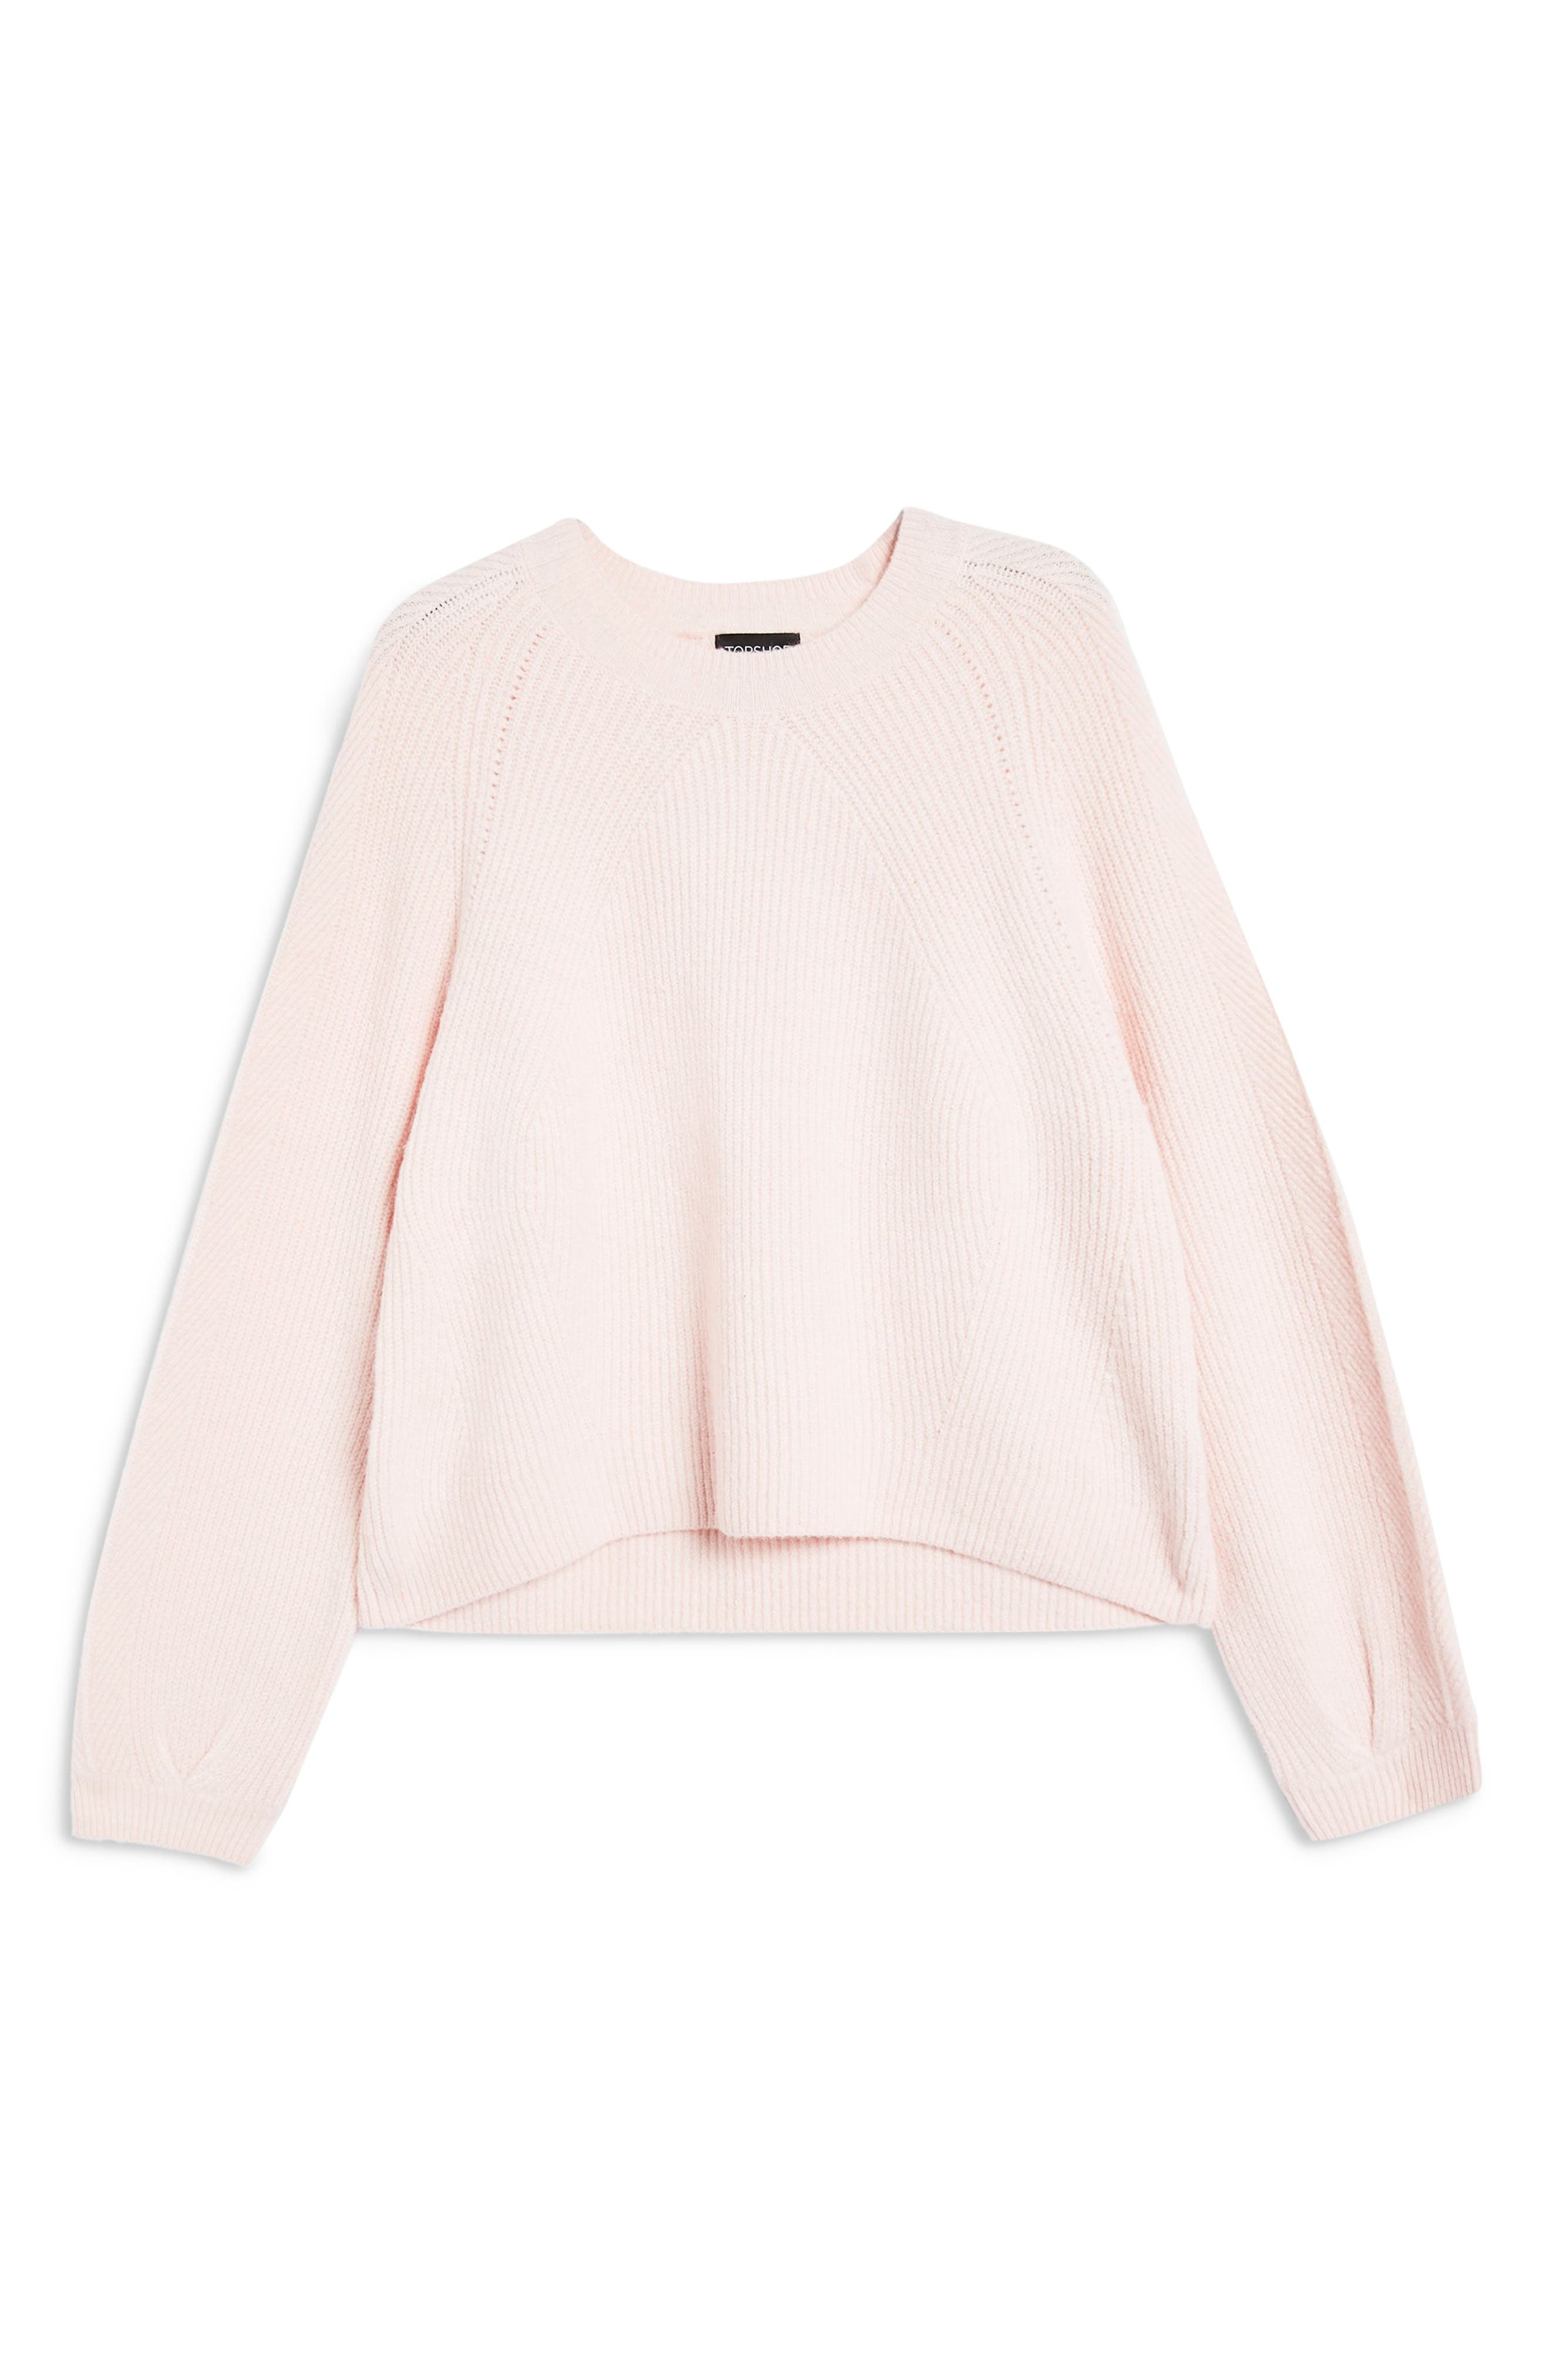 Modern Crewneck Sweater,                             Alternate thumbnail 3, color,                             PINK